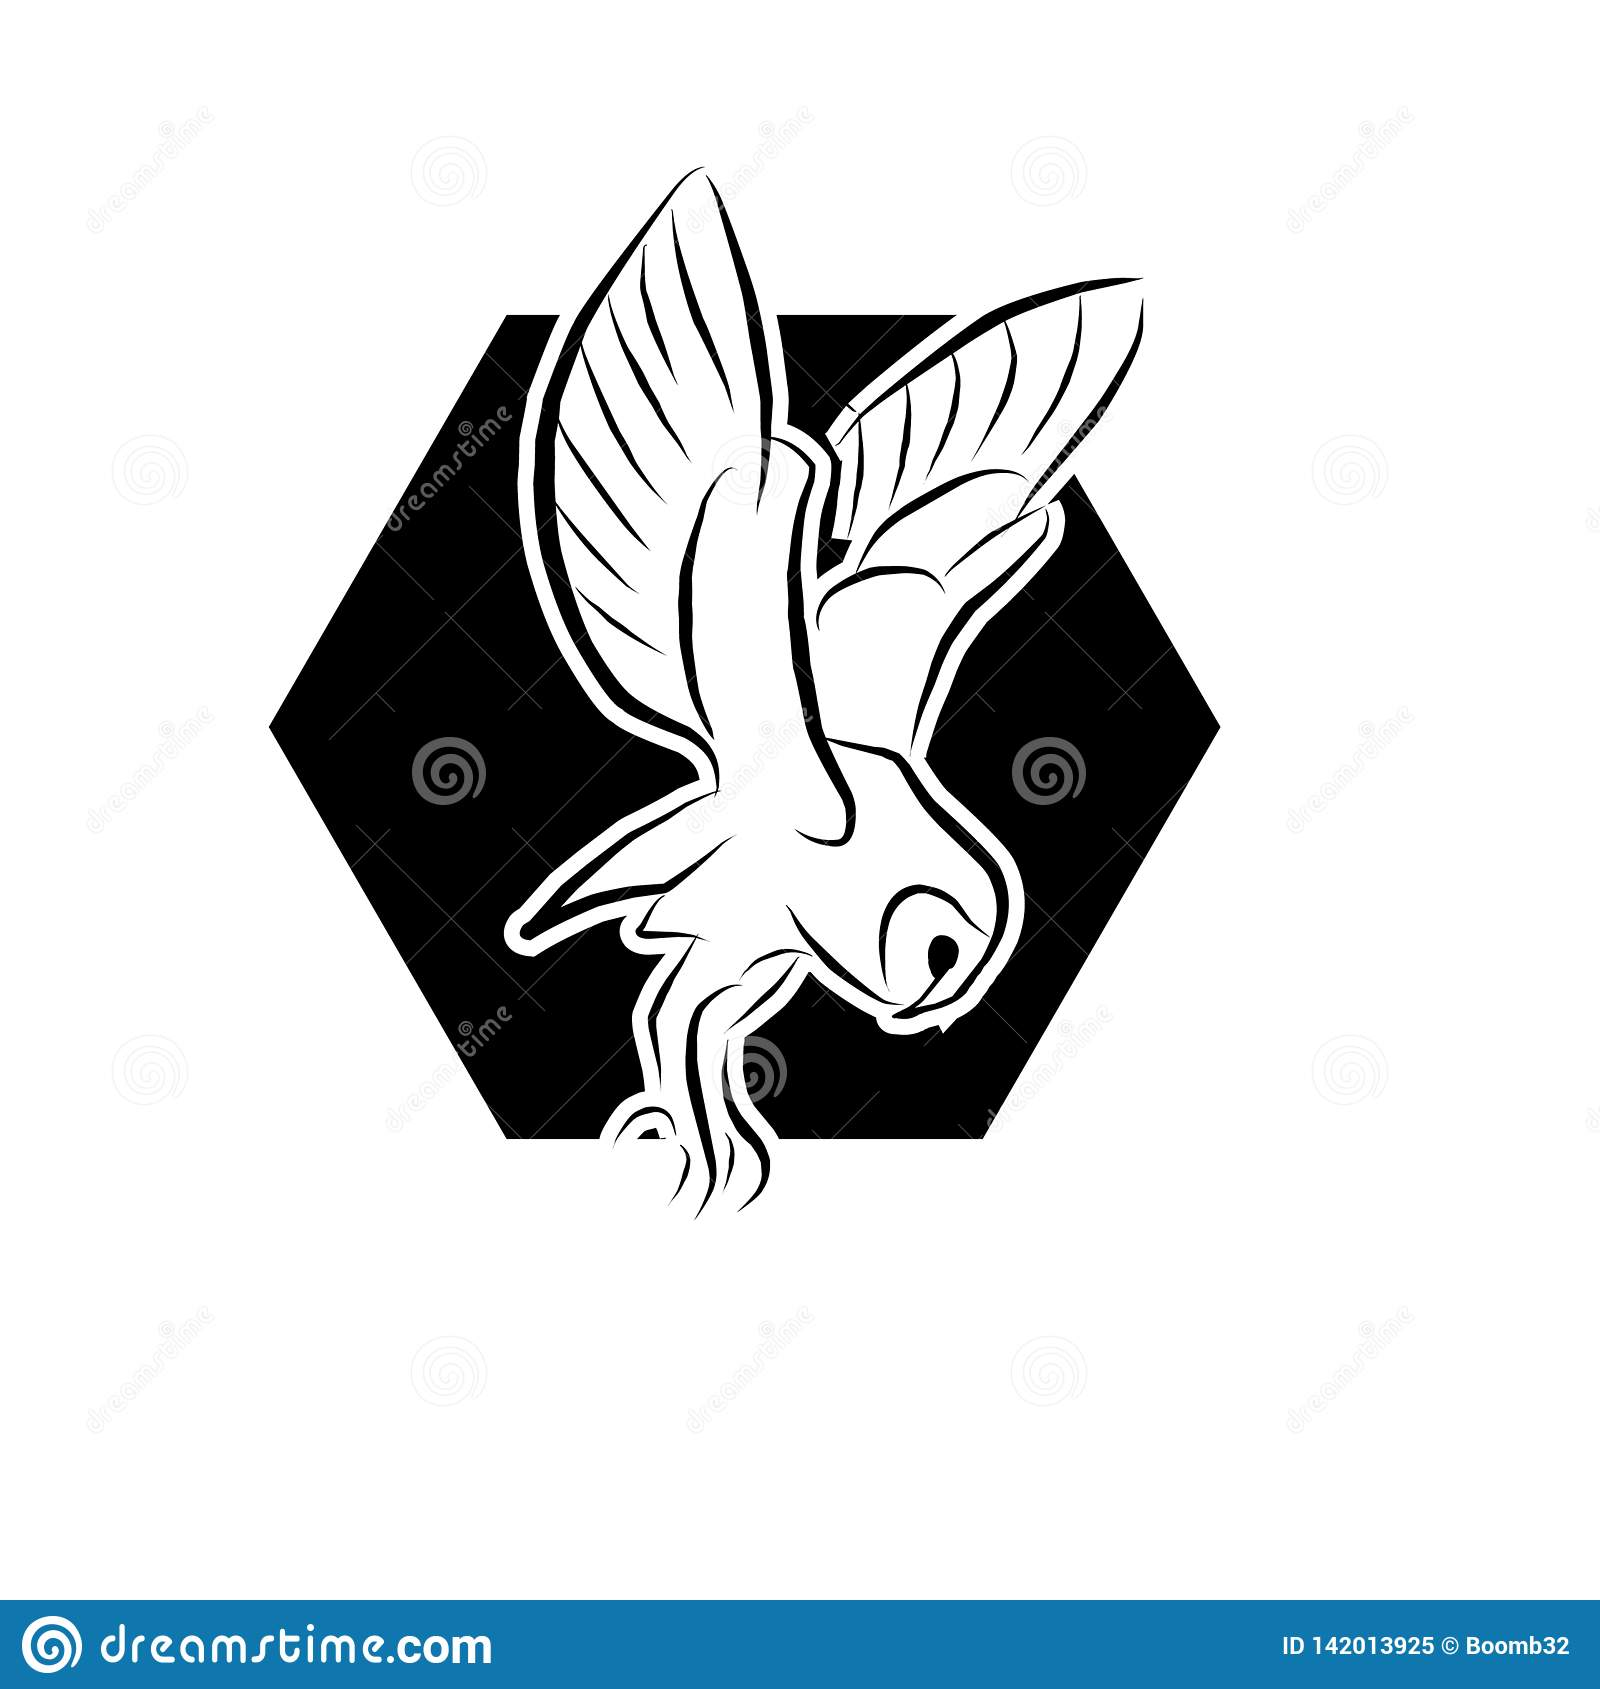 Owl icon vector in modern flat style for web, graphic and mobile design.